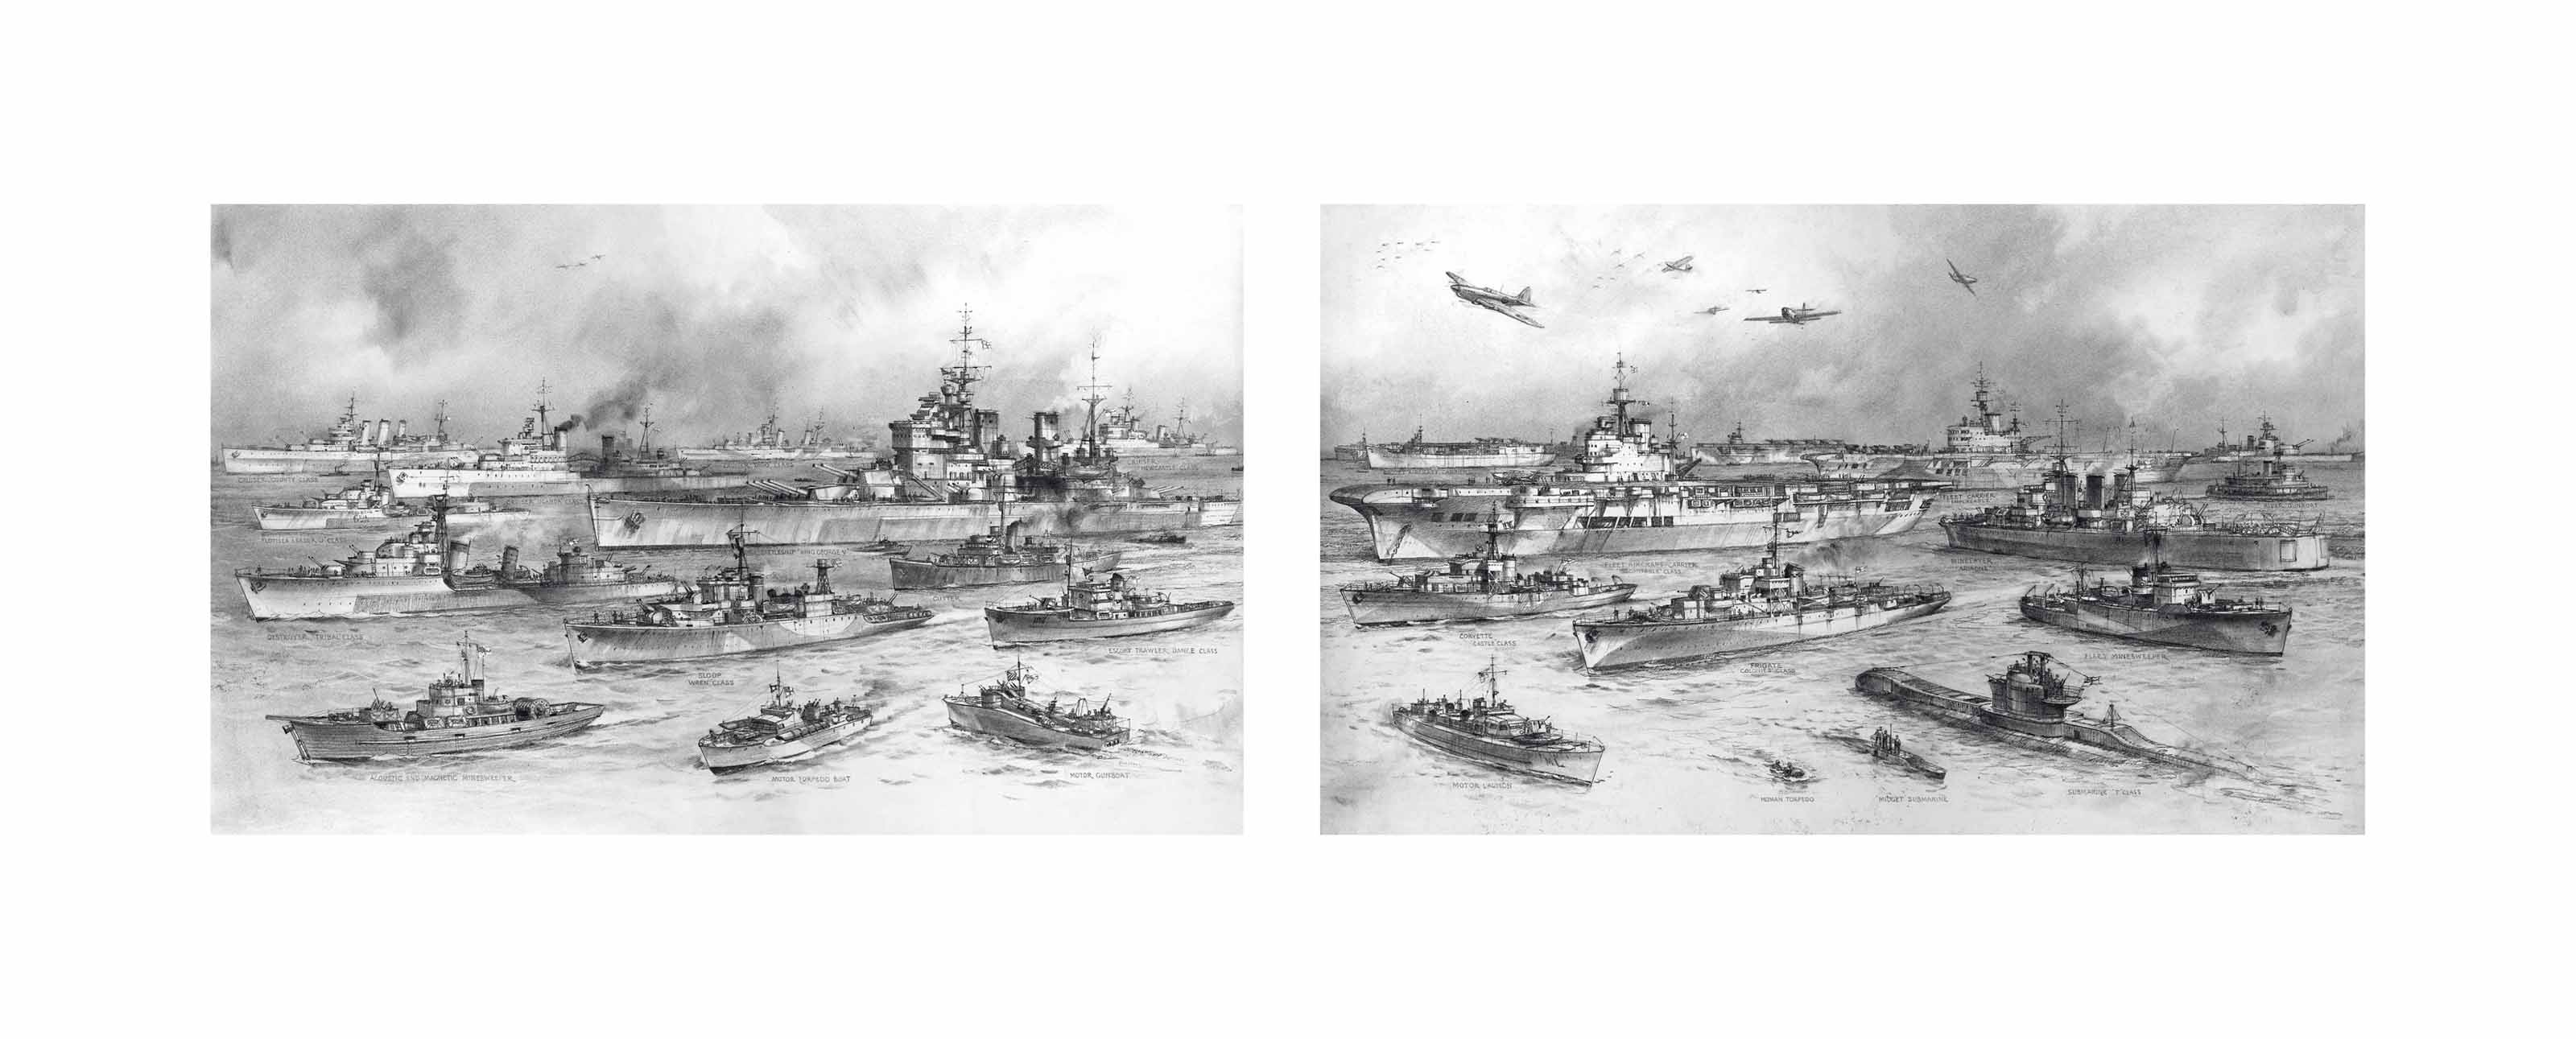 """""""The vast, inventive, adaptive, and in the end, all-controlling power of the Royal Navy"""": The Prime Minister's tribute in his recent broadcast: The various specialised ships of the Royal Navy, from battleships to midget submarines, which for five years have held the seas against the enemy (illustrated)"""